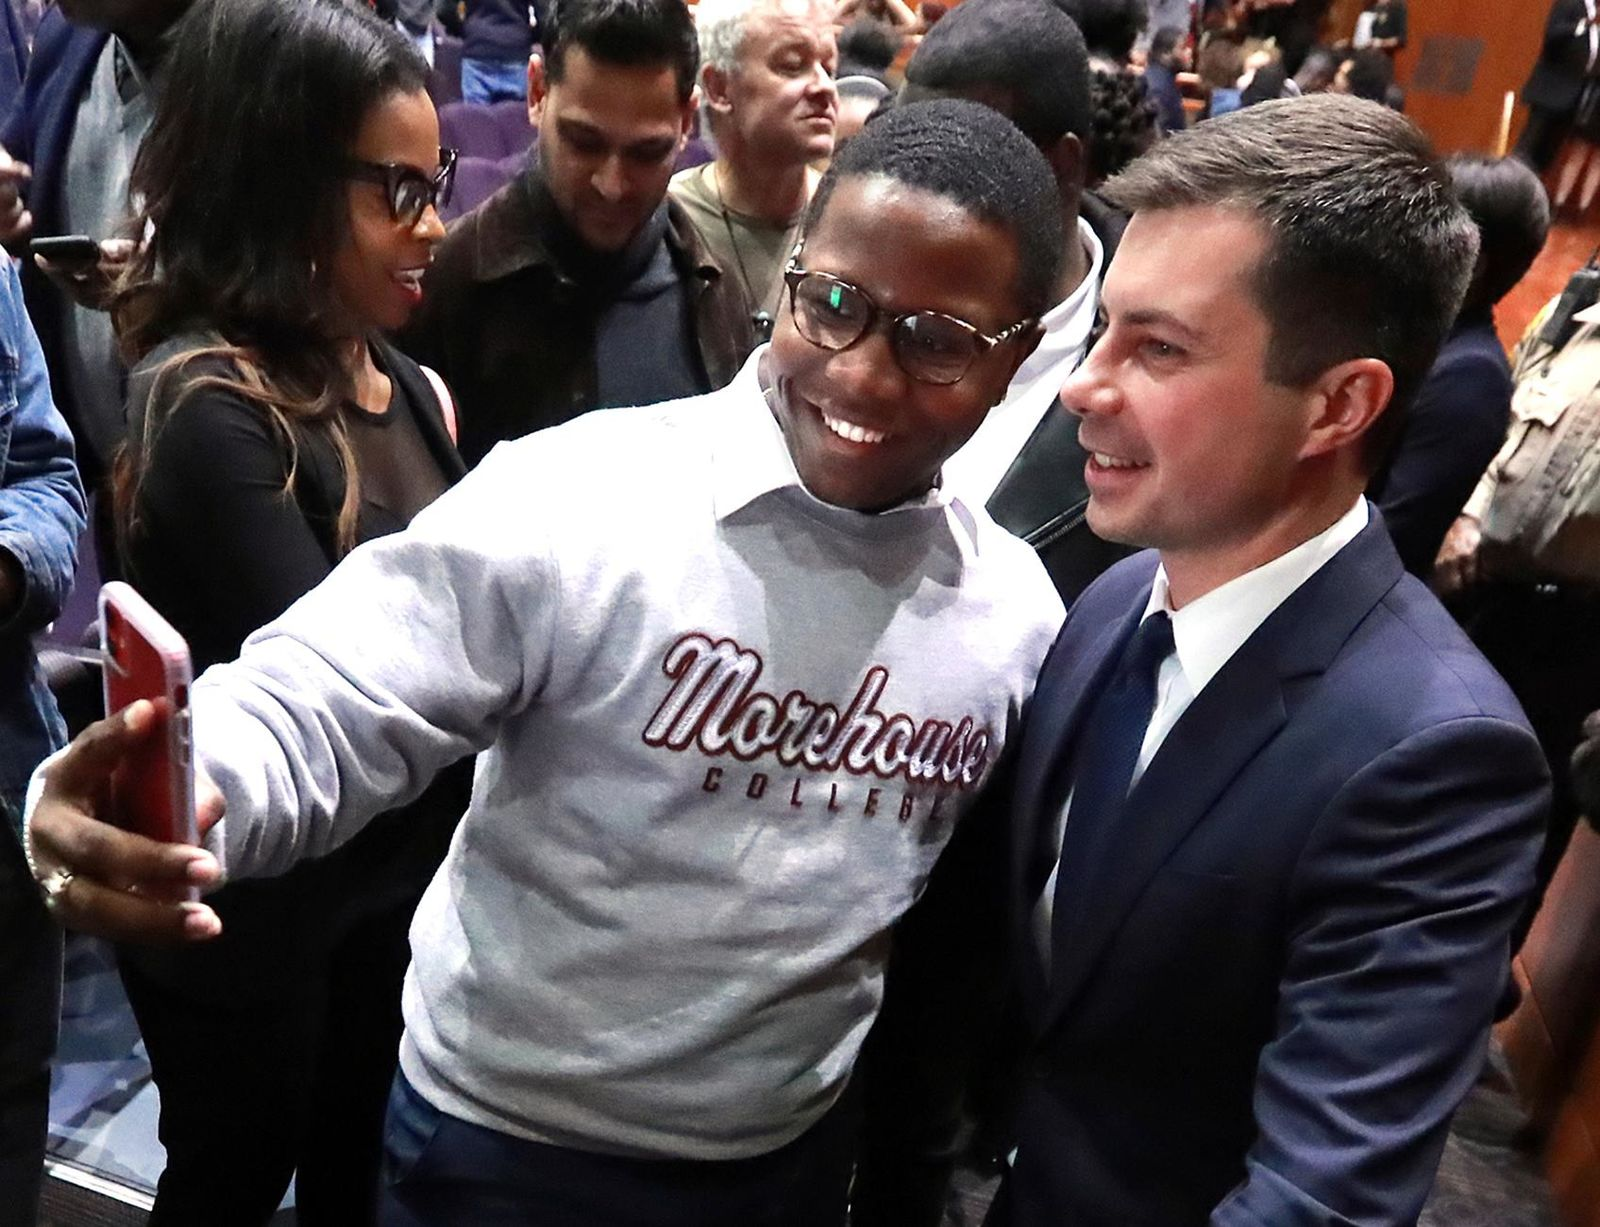 FILE- Morehouse College student Keron Campbell snaps a selfie with presidential hopeful Pete Buttigieg, Mayor of South Bend, Ind., at Morehouse College on Monday, Nov. 18, 2019, in Atlanta. (Curtis Compton/Atlanta Journal-Constitution via AP)